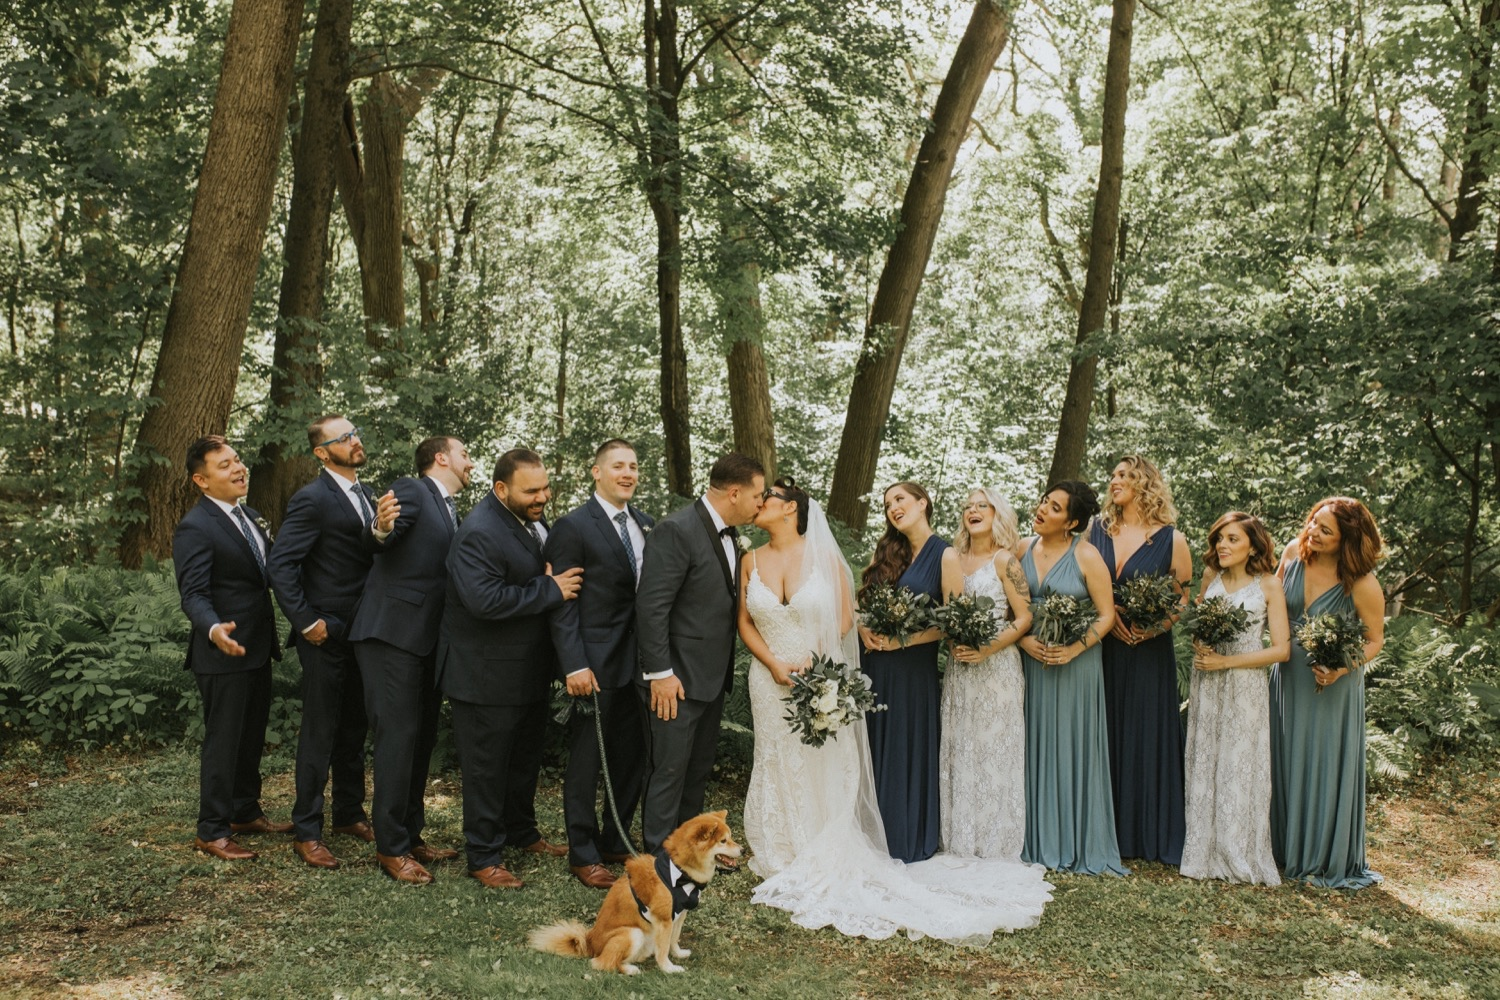 hudson valley wedding photographer, locust grove, locust grove wedding, new york wedding, spring wedding, hudson valley wedding